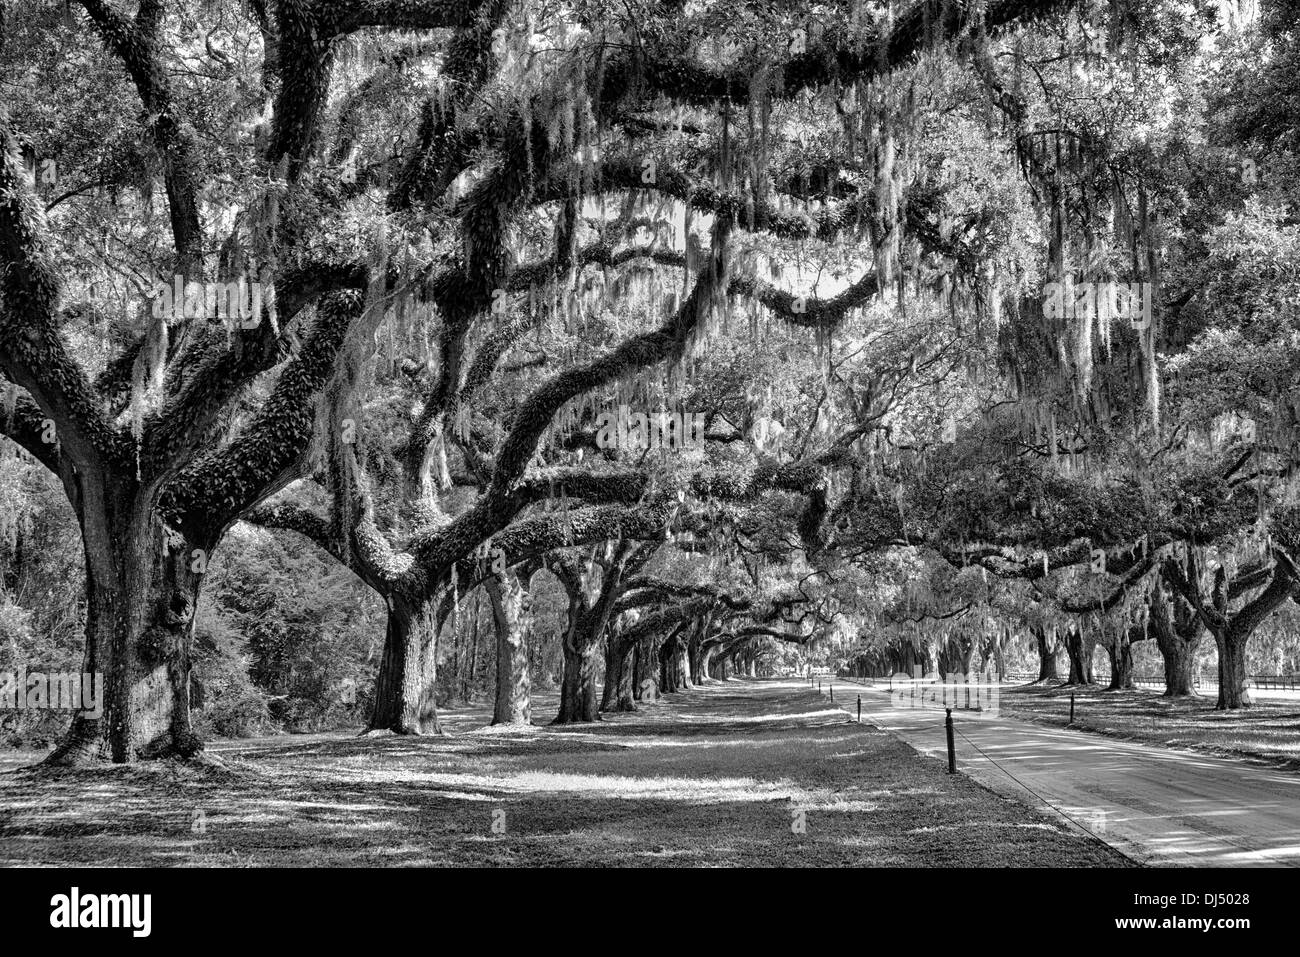 Avenue of Oaks at Boone Hall Plantation in Charleston, South Carolina in black and white - Stock Image